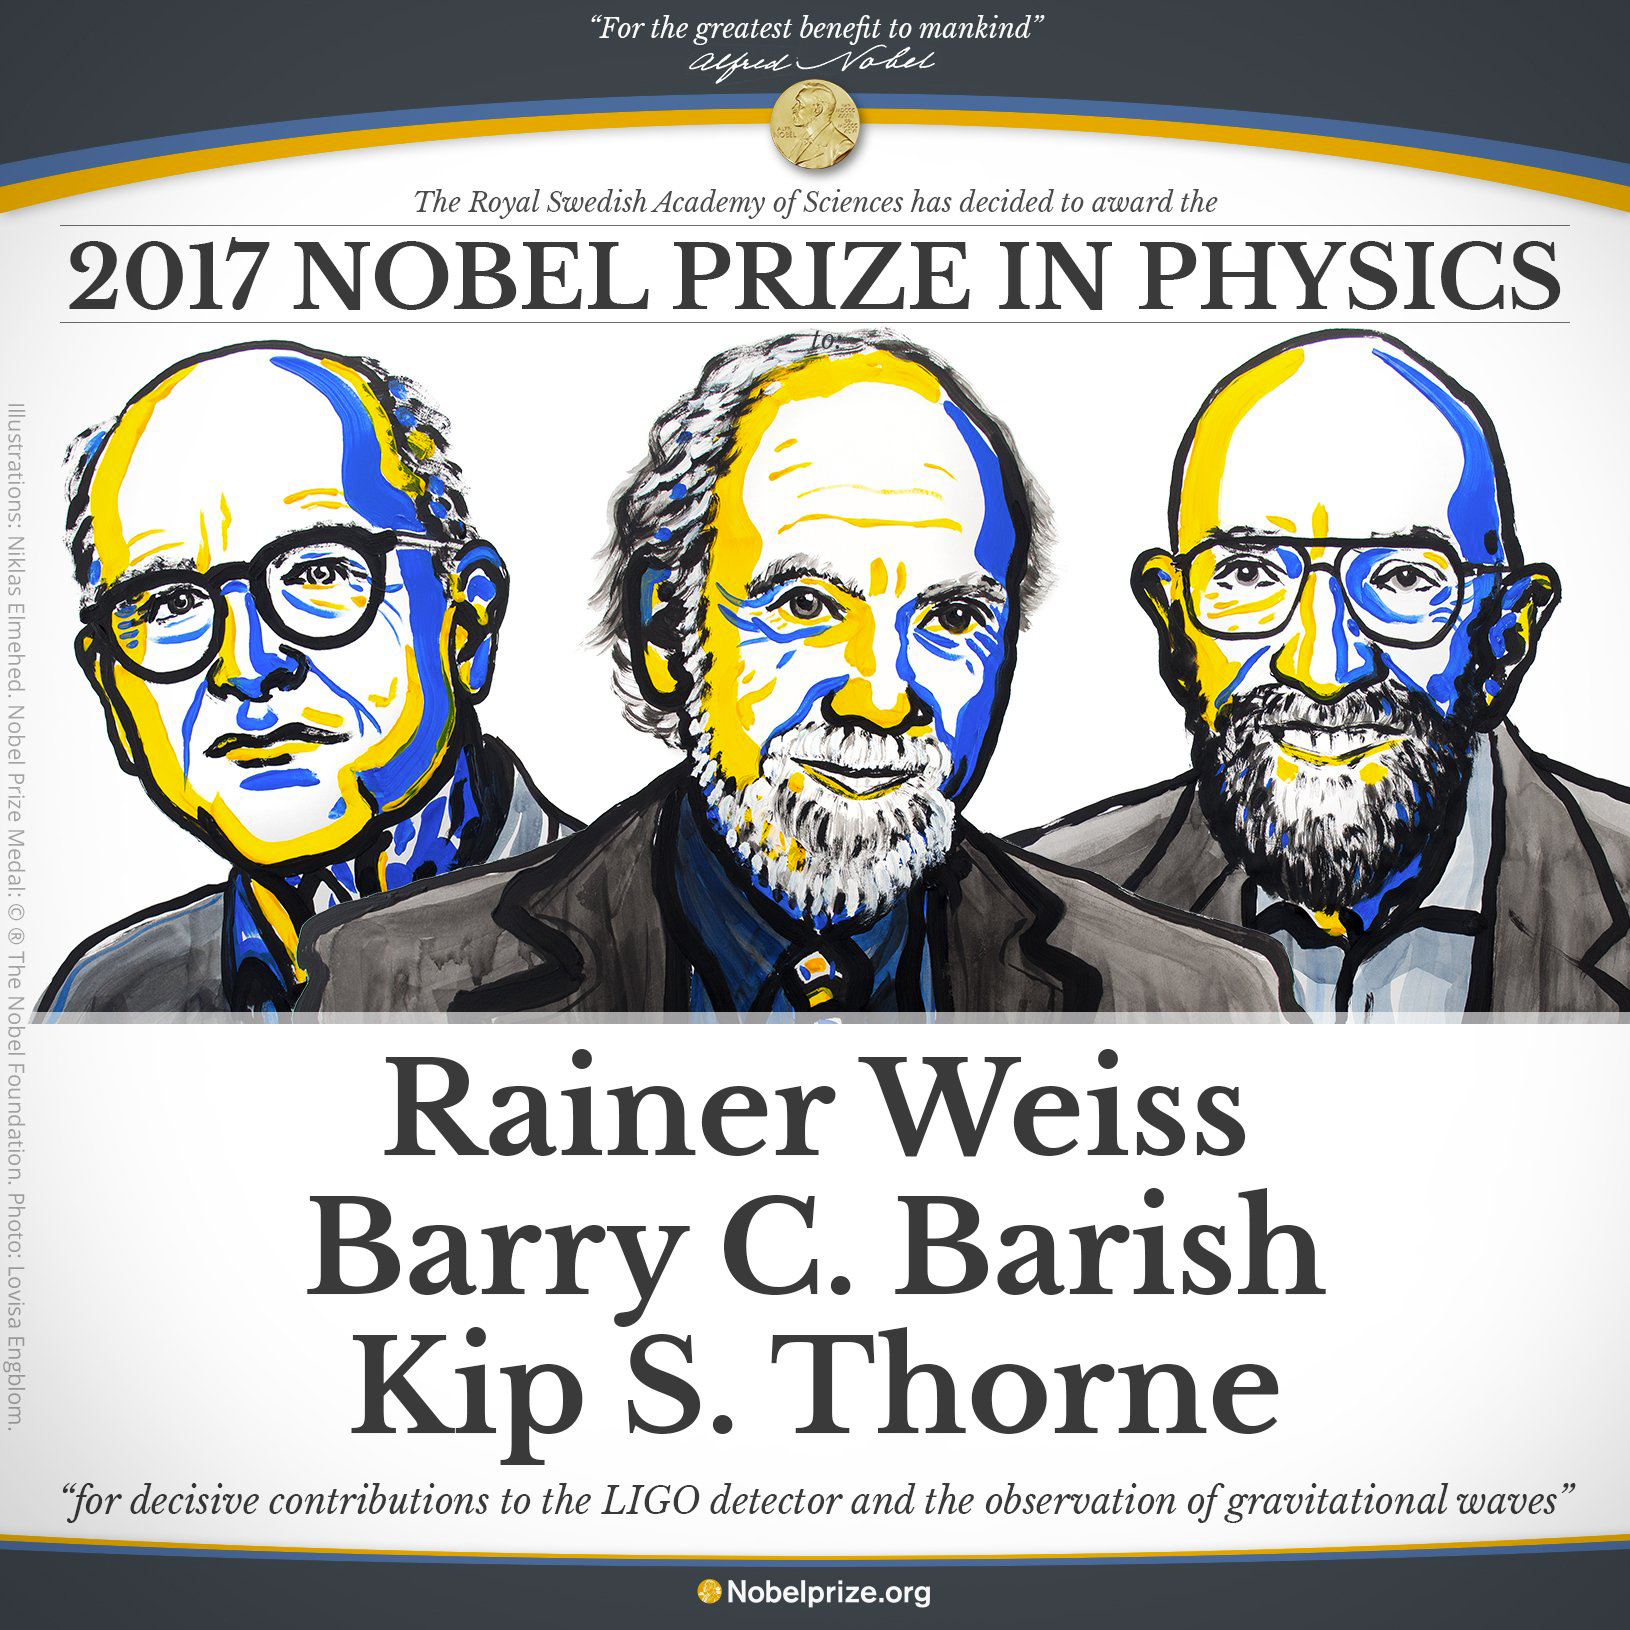 http://www.media.inaf.it/wp-content/uploads/2017/10/nobel-winners.jpg